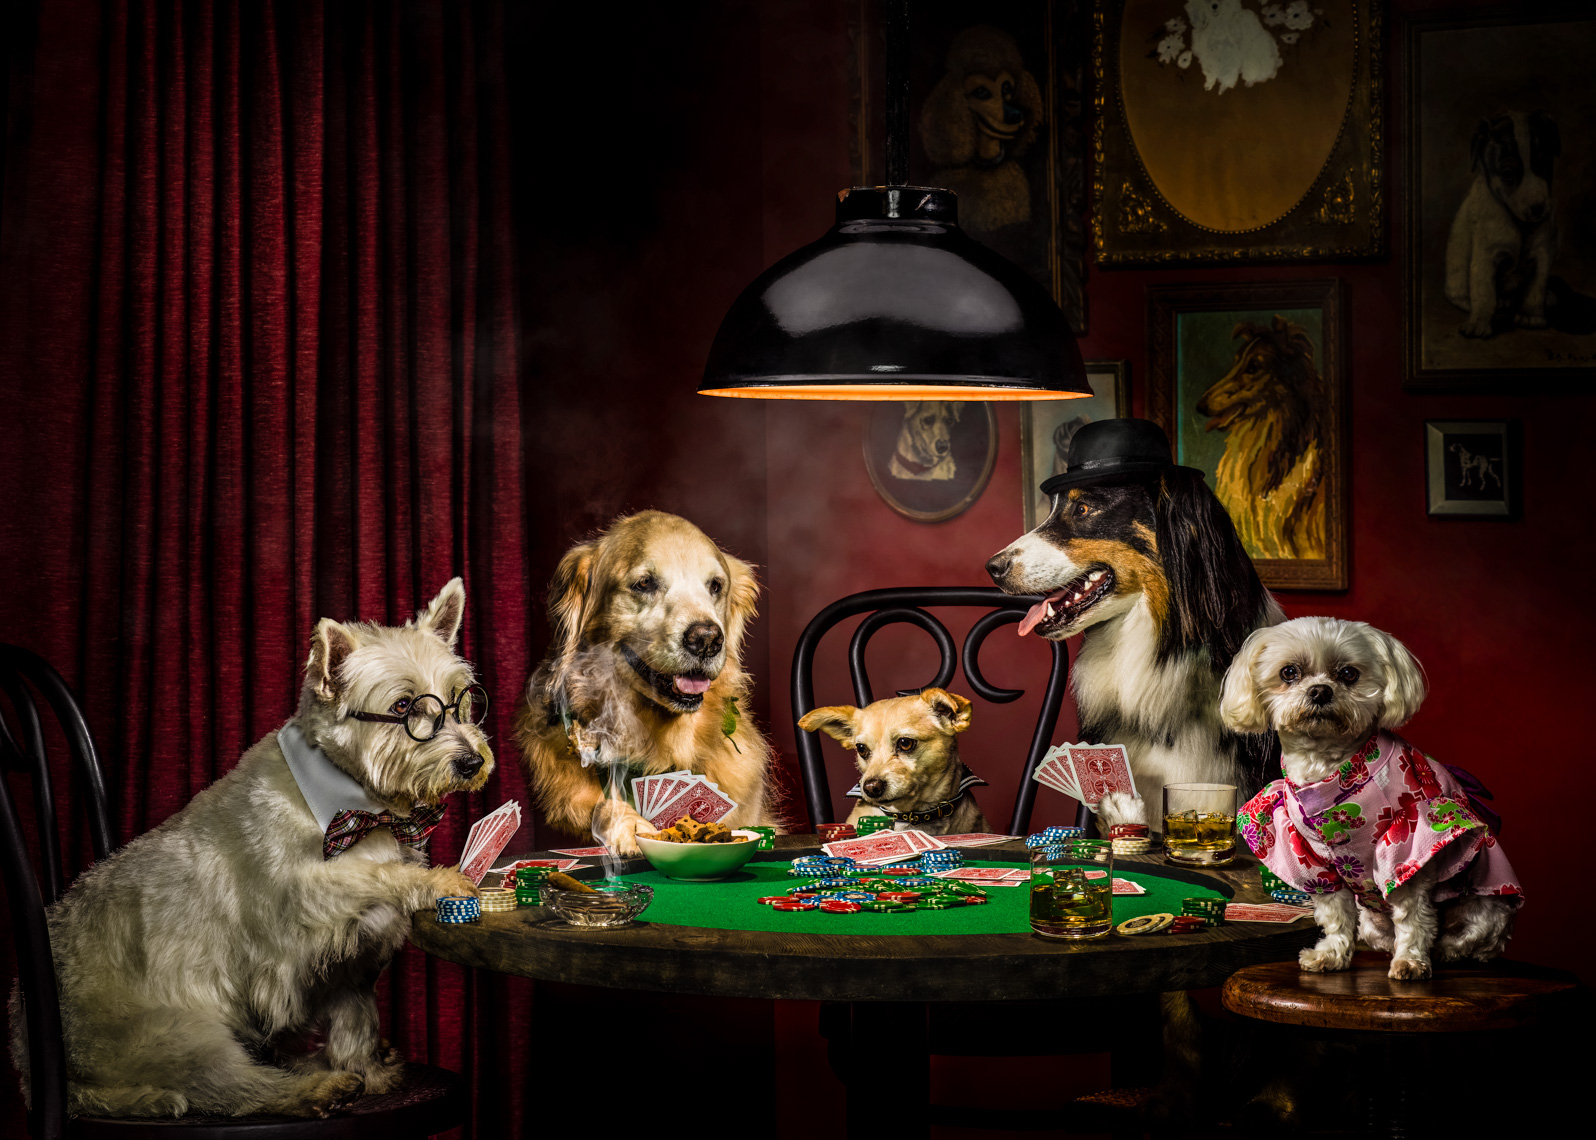 Los Angeles Photographer | Dana Hursey Photography | Quirky Photography | Dogs Playing Poker